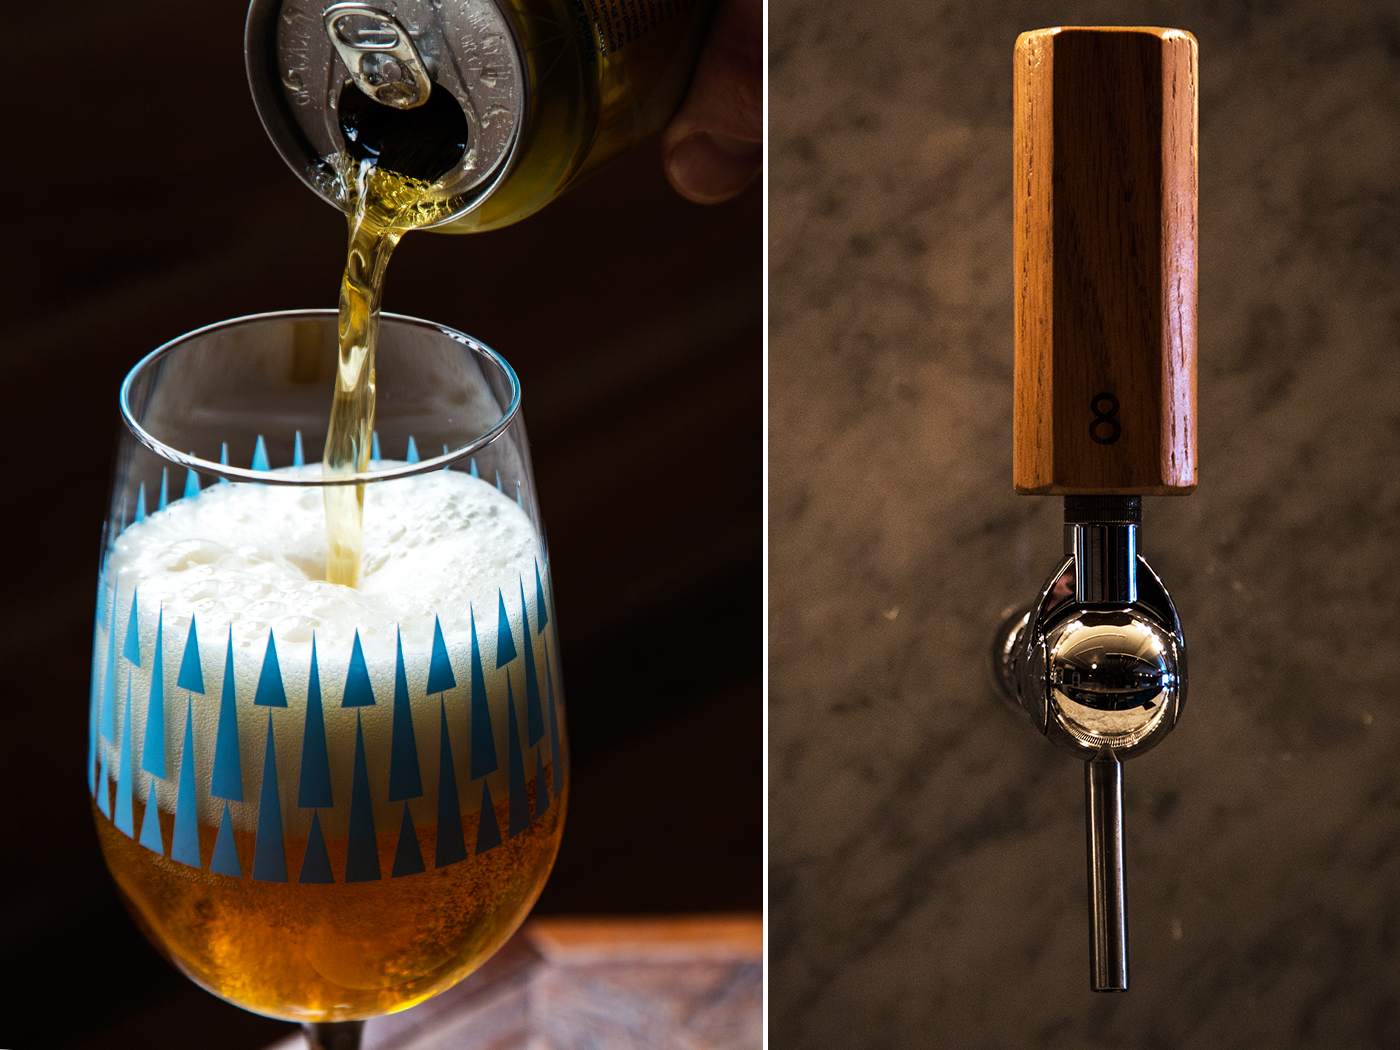 Beer-Pouring-Katie-B-Foster-Photography.jpg